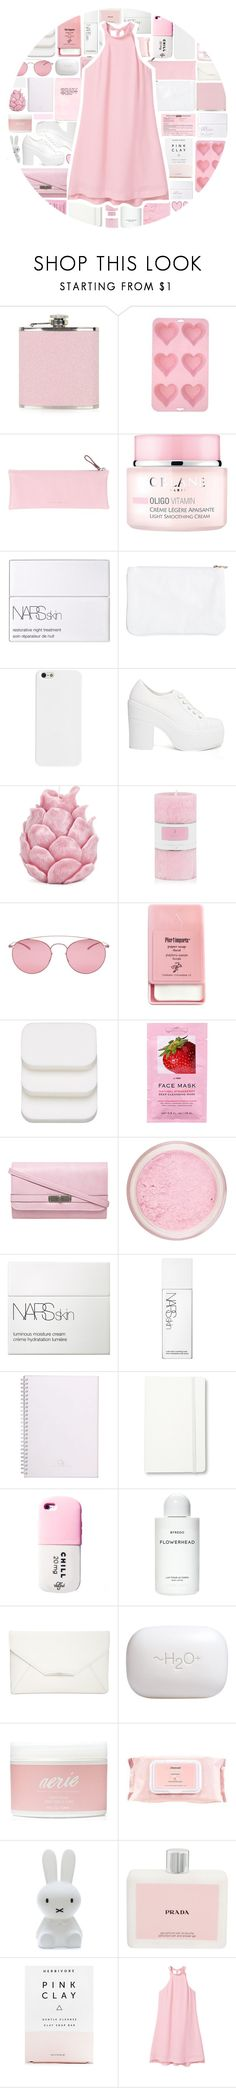 """""""Halter Dress"""" by stelbell ❤ liked on Polyvore featuring Topshop, CO, Giorgio Fedon 1919, NARS Cosmetics, Shellys, Zara Home, Maison Margiela, Pier 1 Imports, COVERGIRL and H&M"""